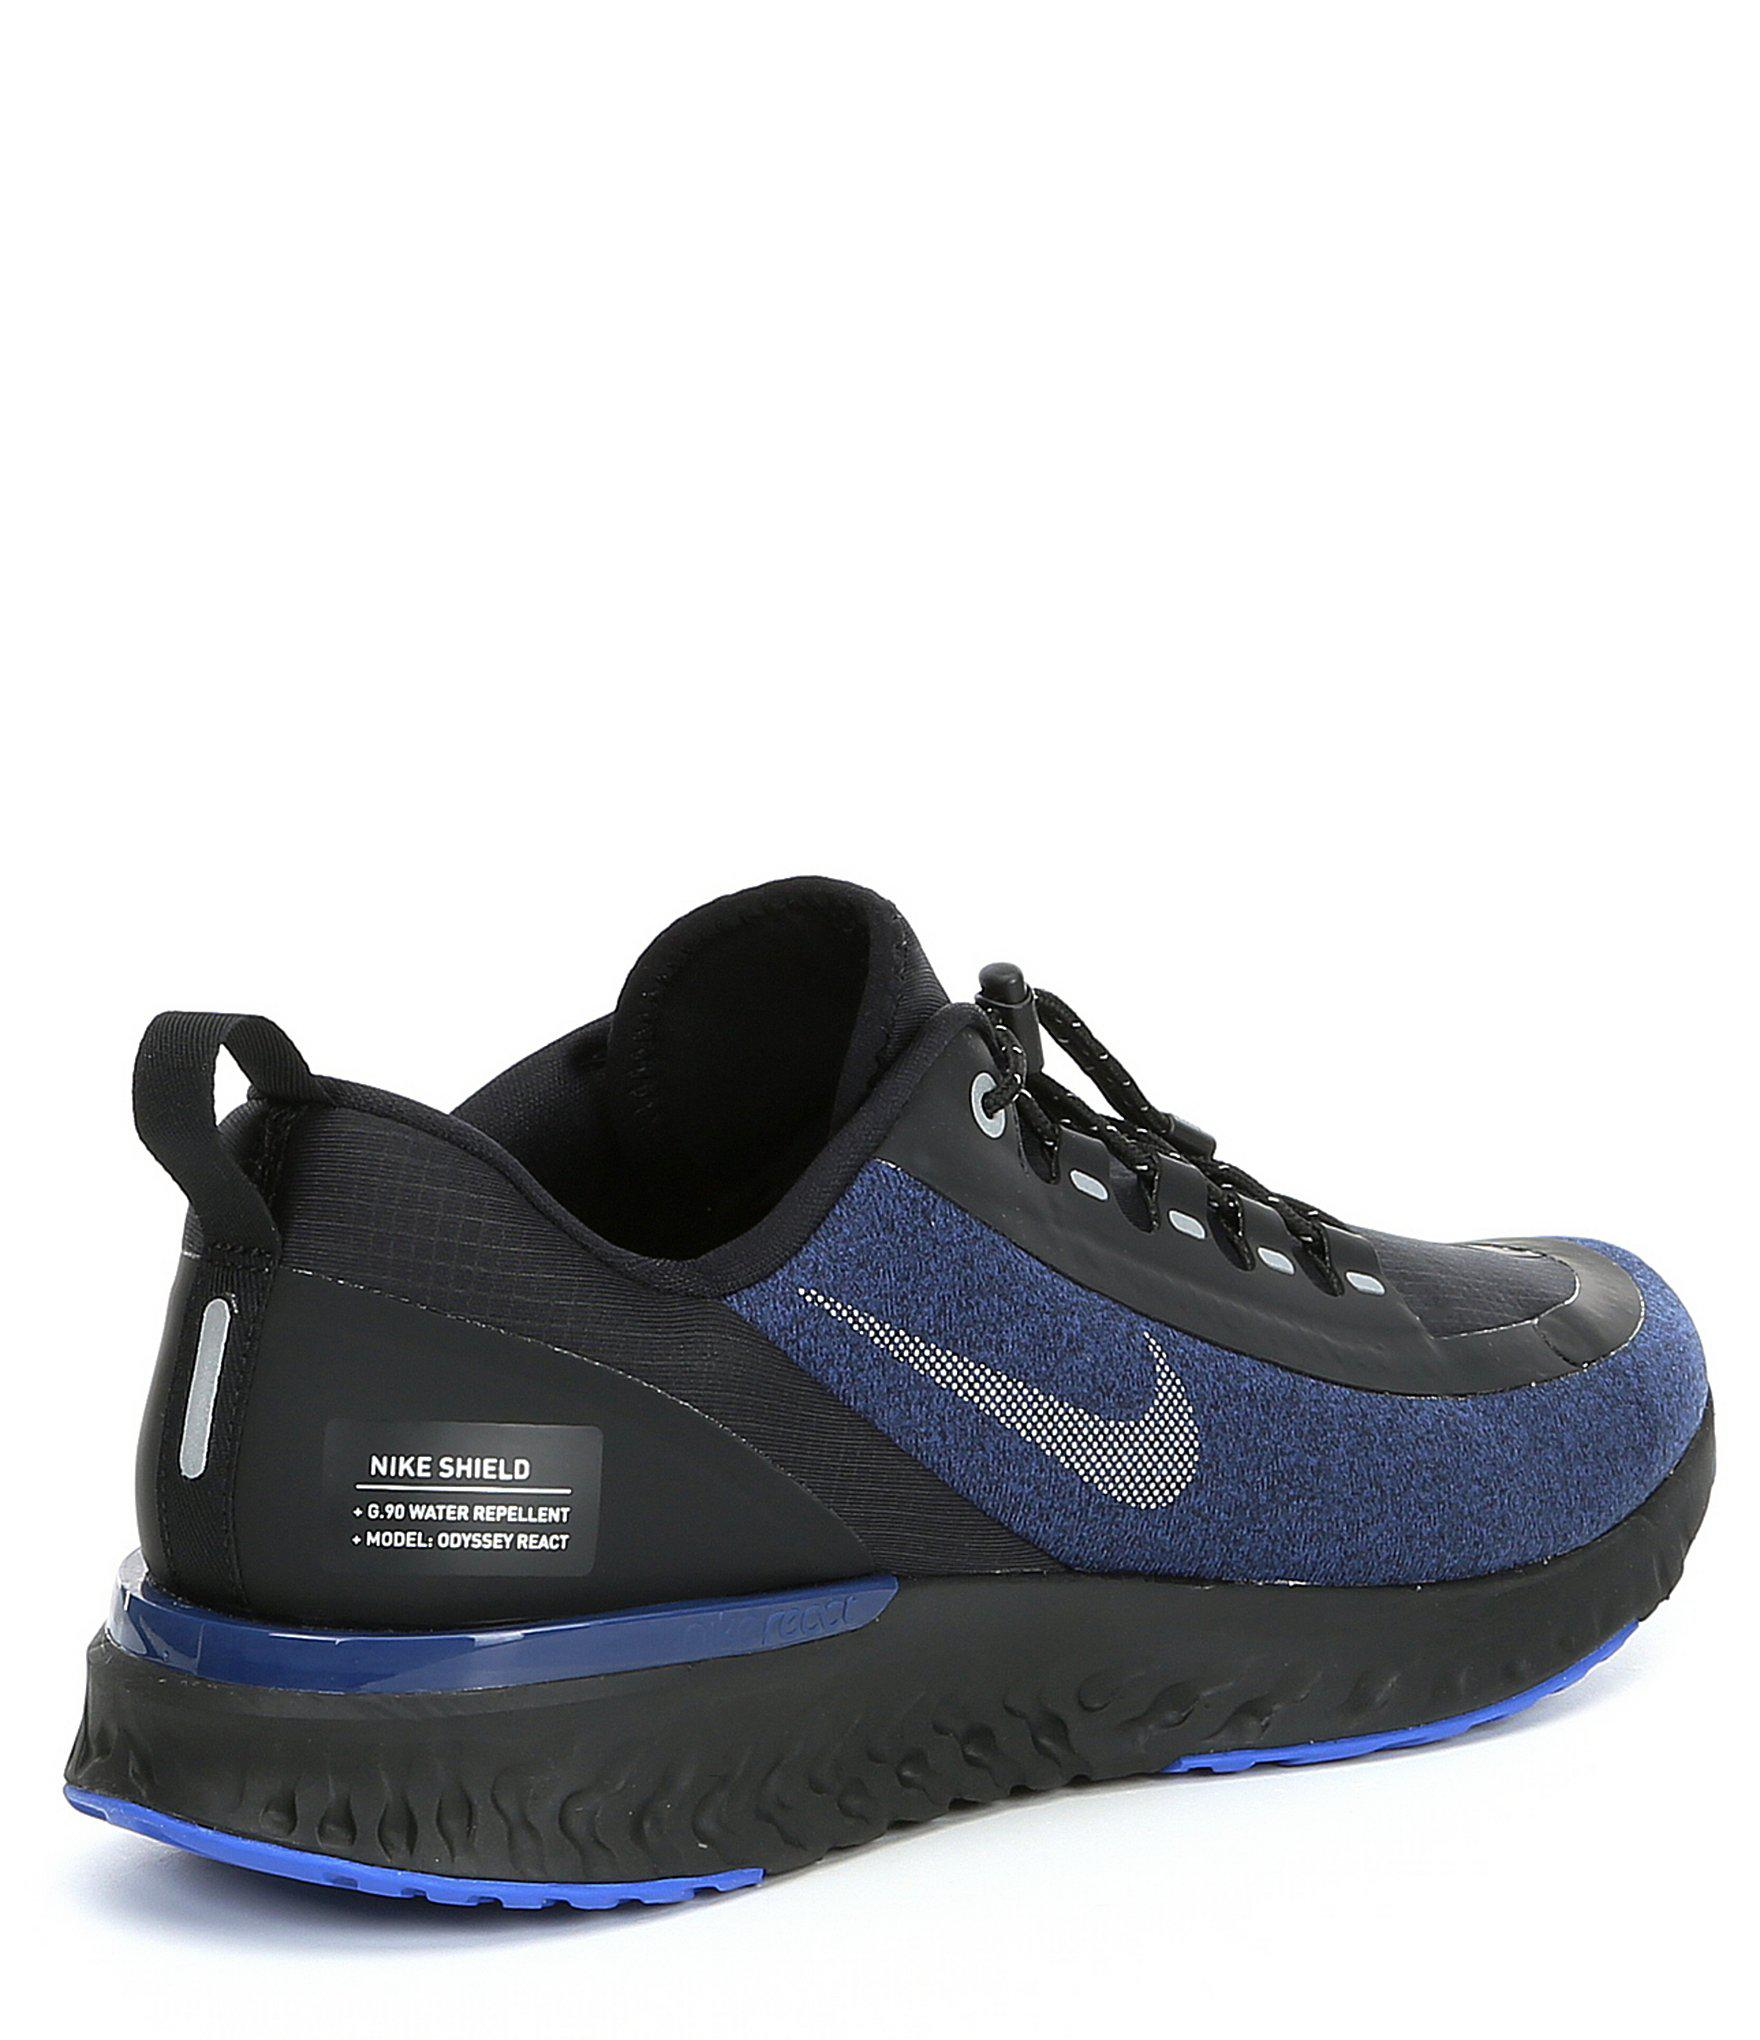 97506384ca53 Lyst - Nike Men s Odyssey React Shield Running Shield in Blue for Men